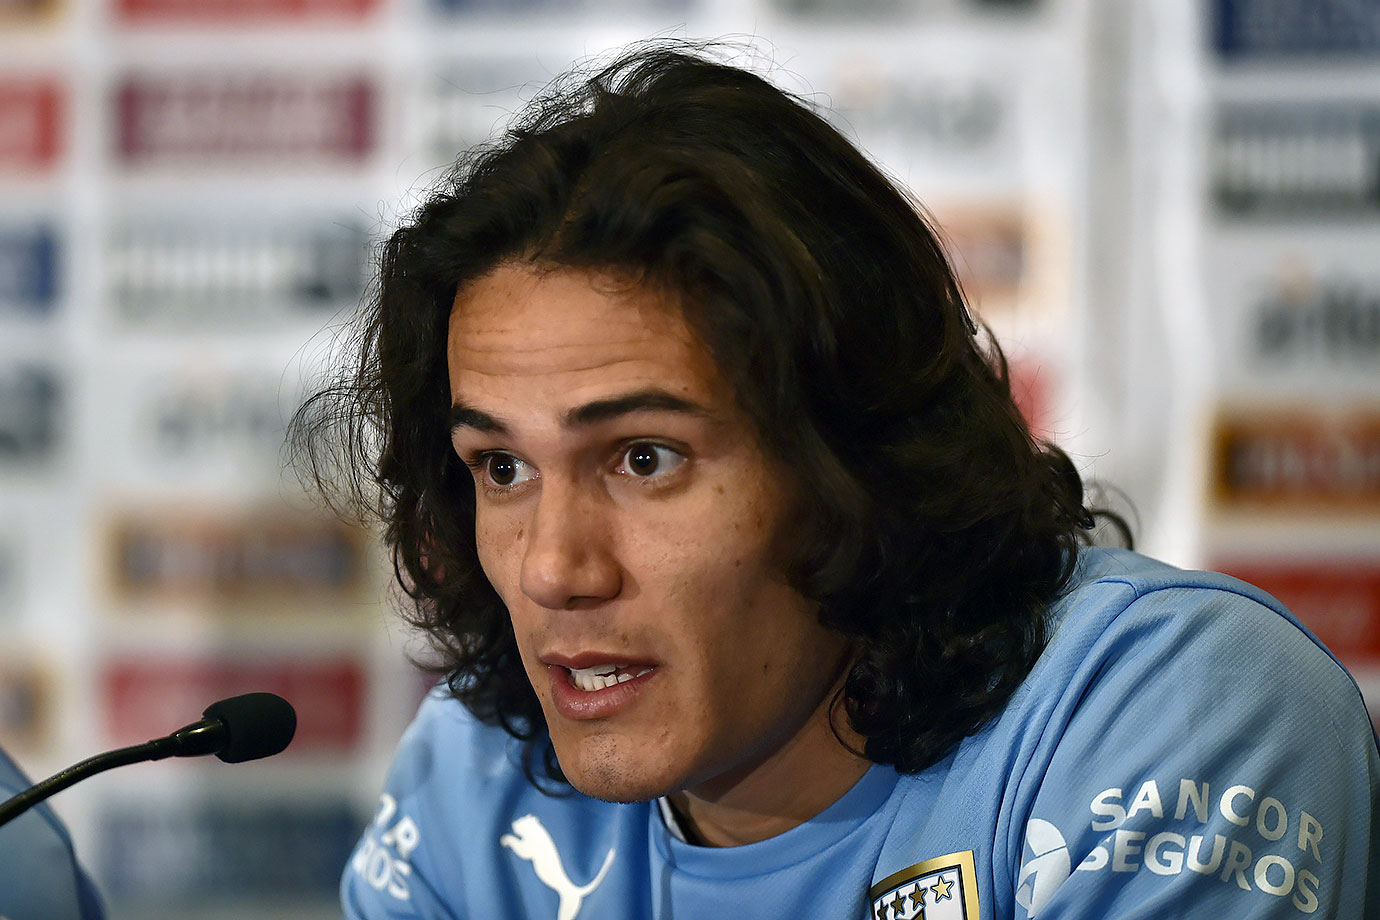 Paris Saint-Germain striker Edinson Cavani thought that Jamaica, Uruguay's first opponent in the Copa America, was in Africa.